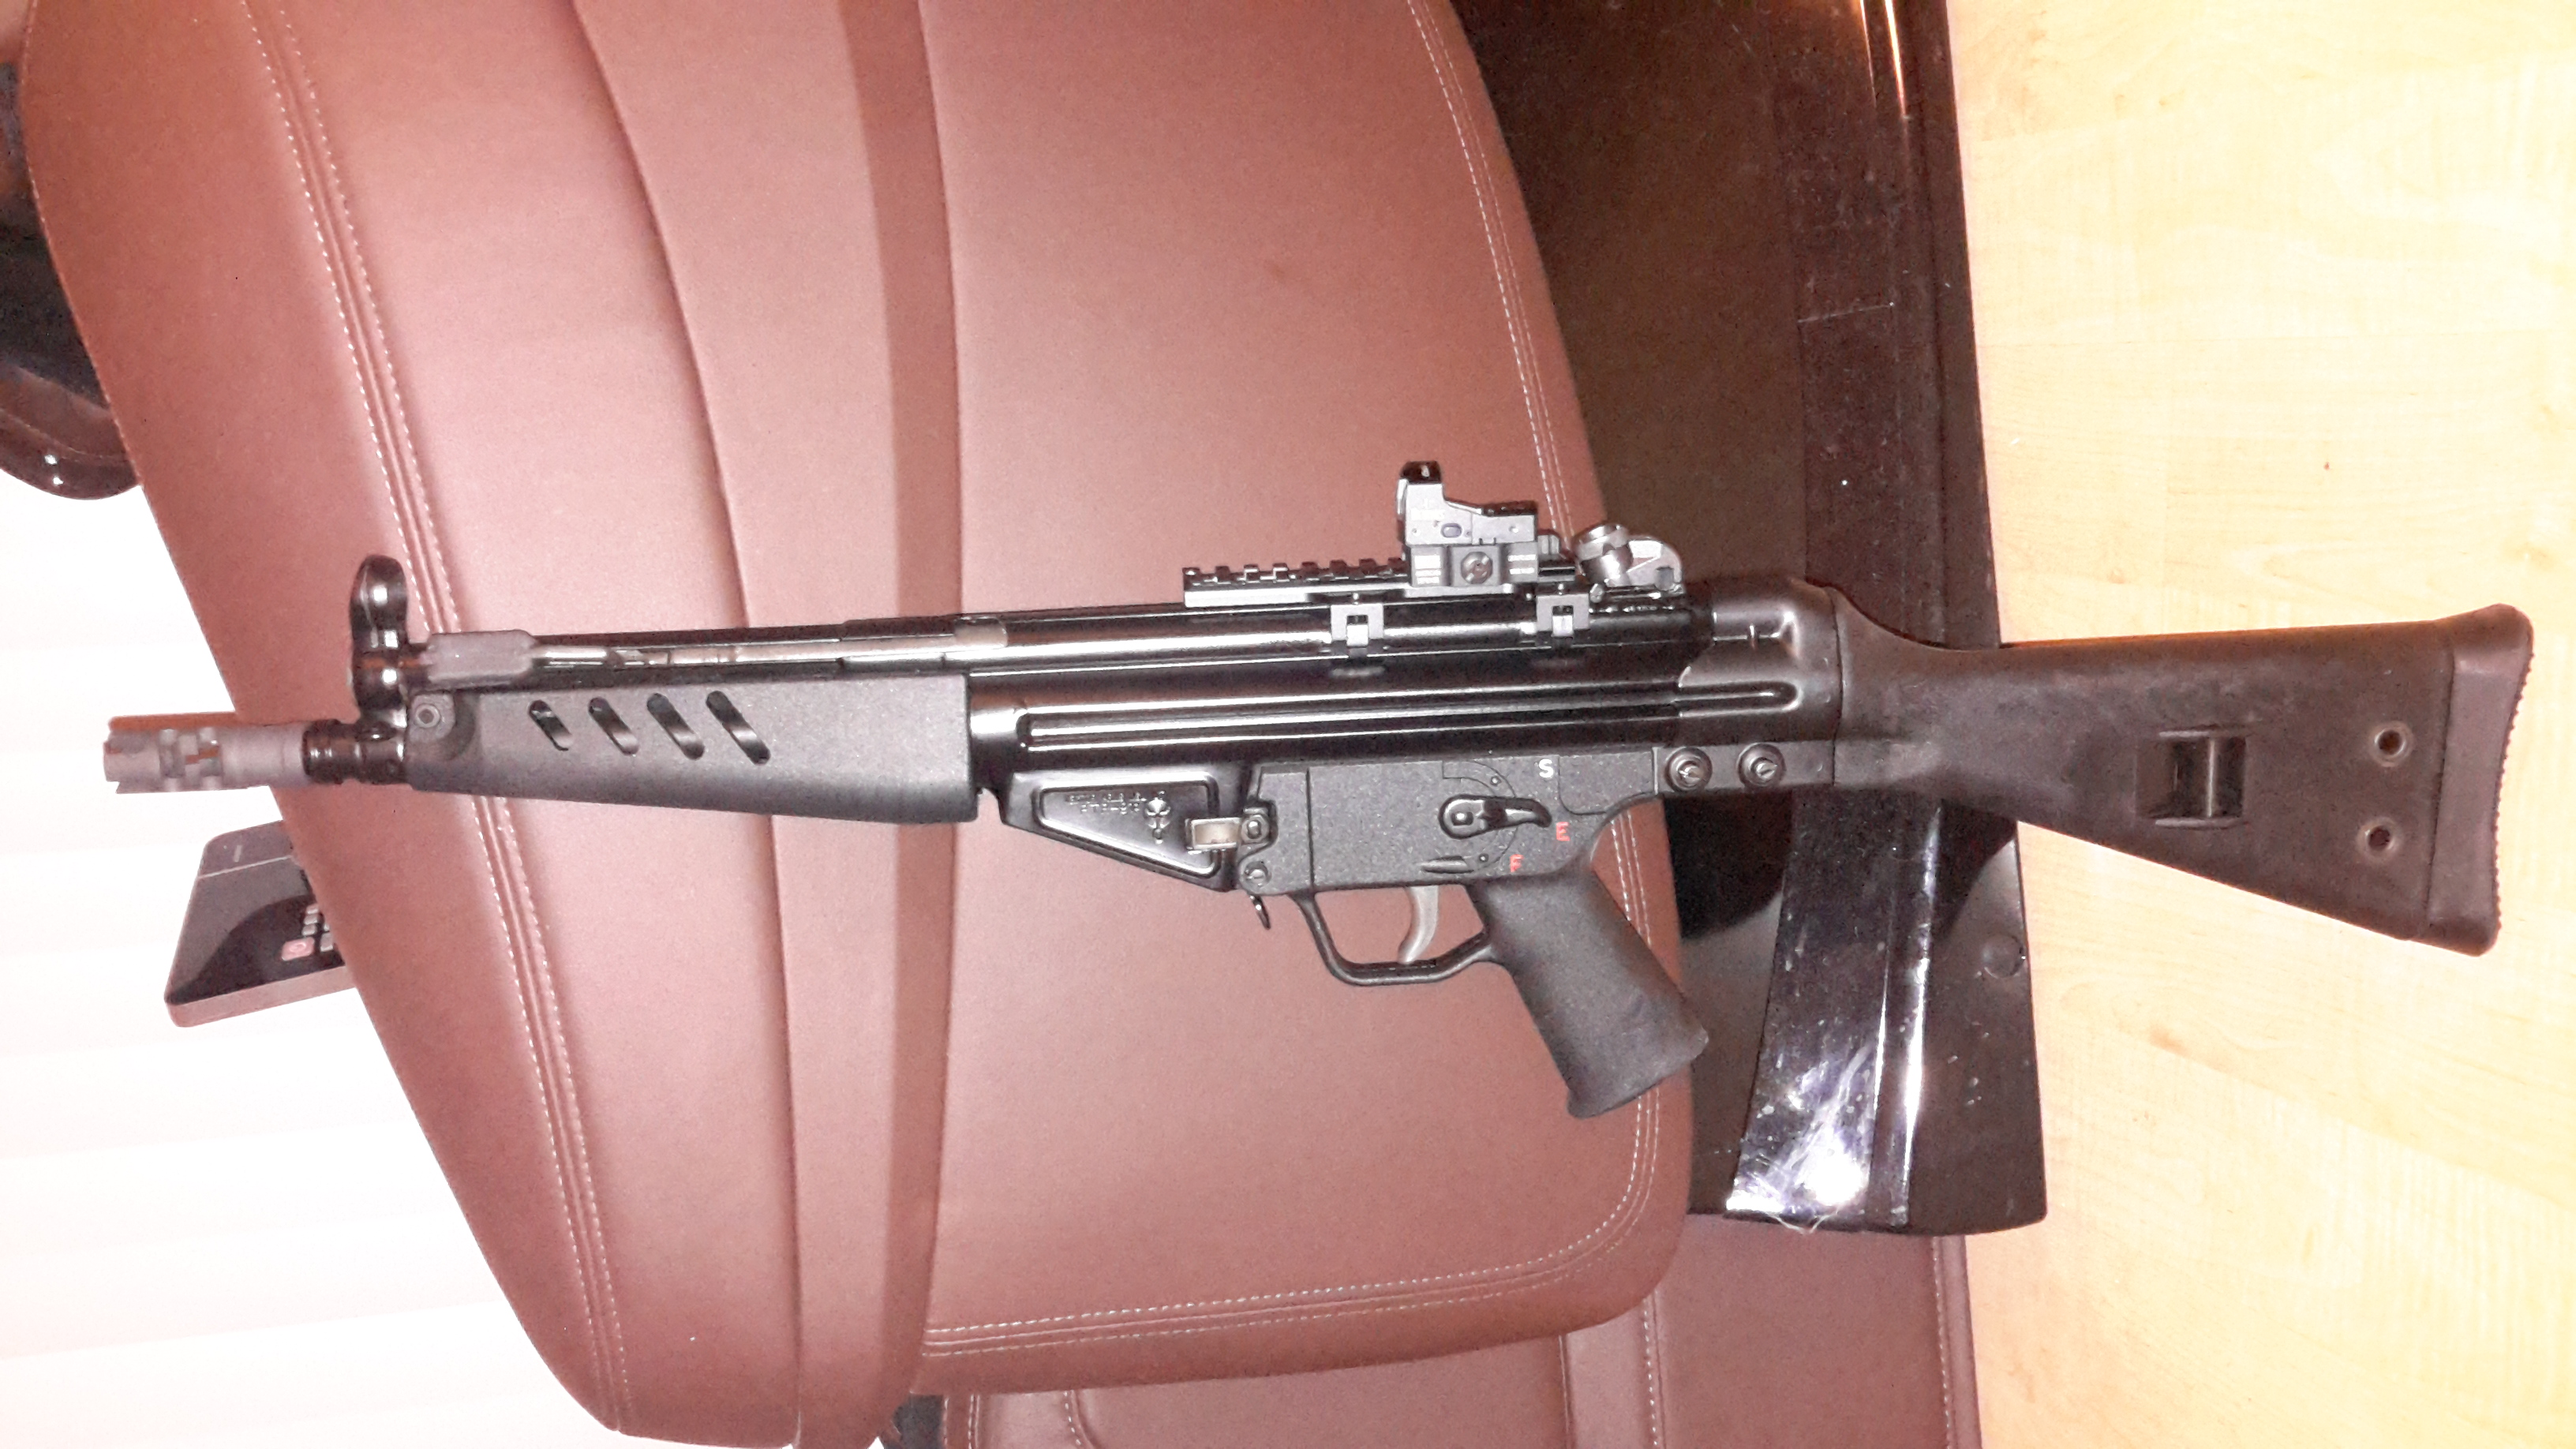 Problem installing PWS FSC91 muzzle device on V51 pistol.-20170912_212731.jpg